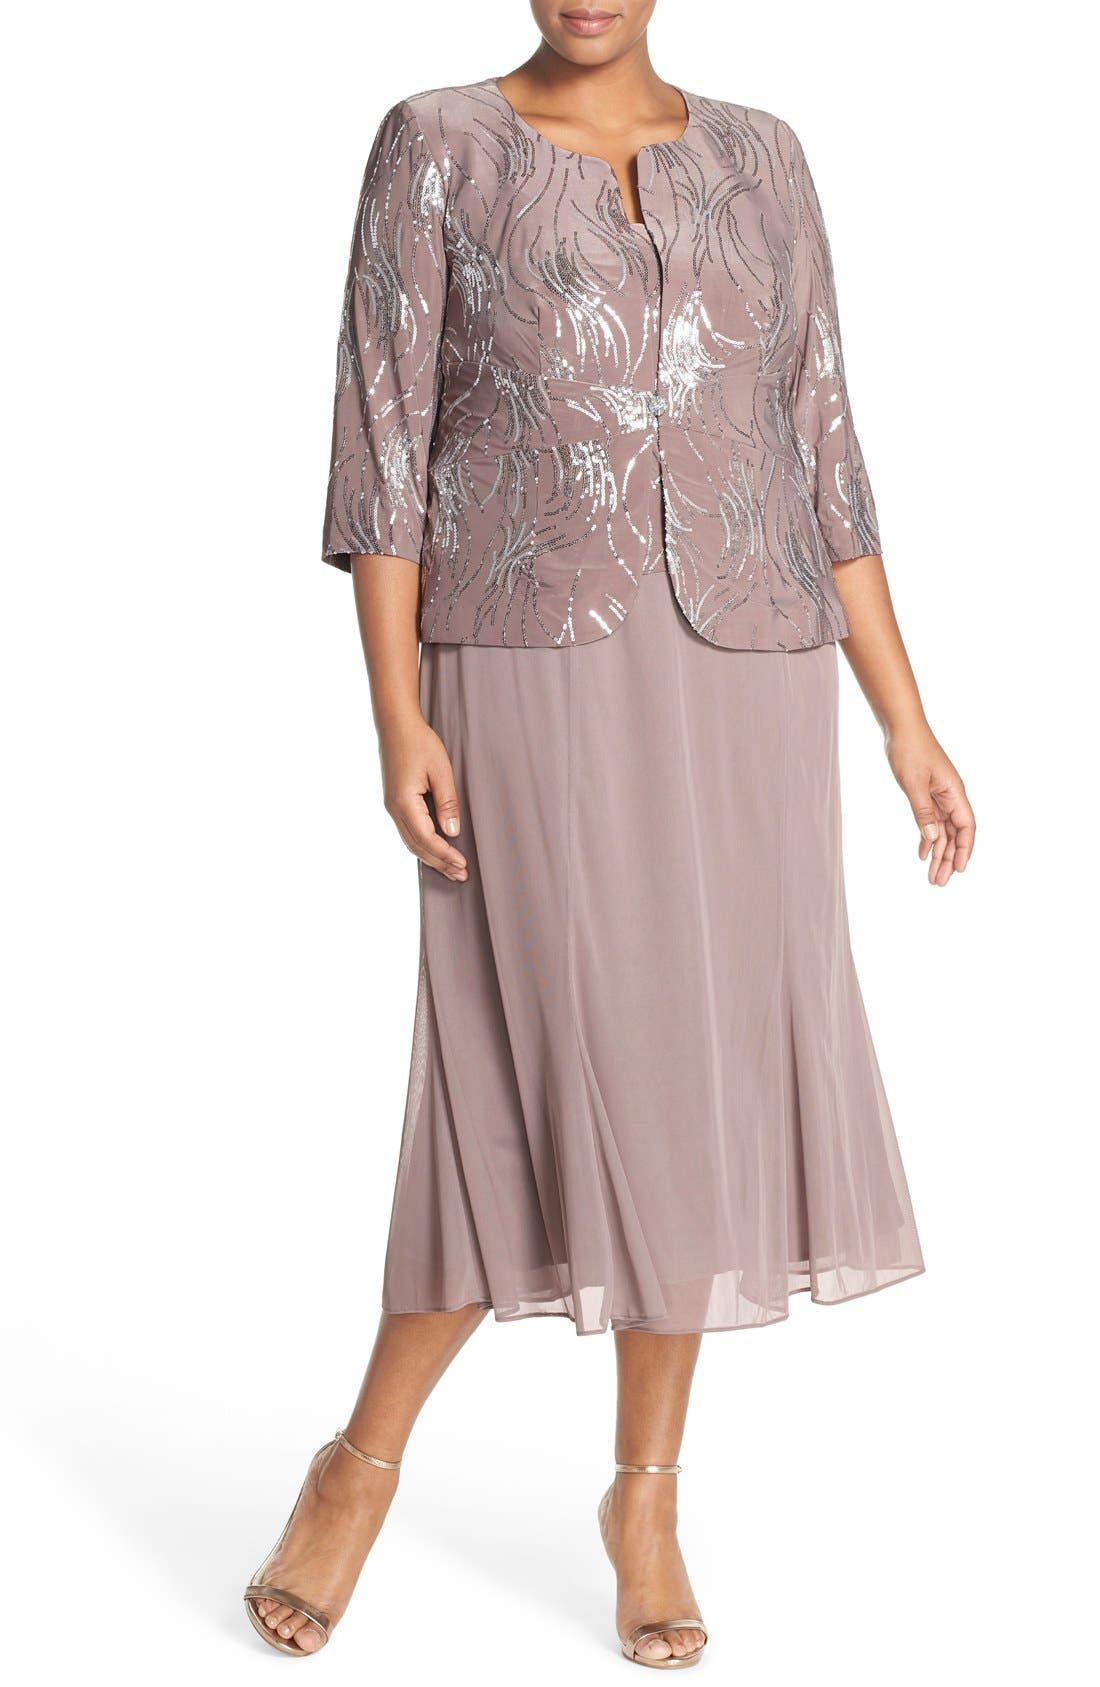 Alternate Image 1 Selected - Alex Evenings Sequin Mock Two-Piece Dress with Jacket (Plus Size)